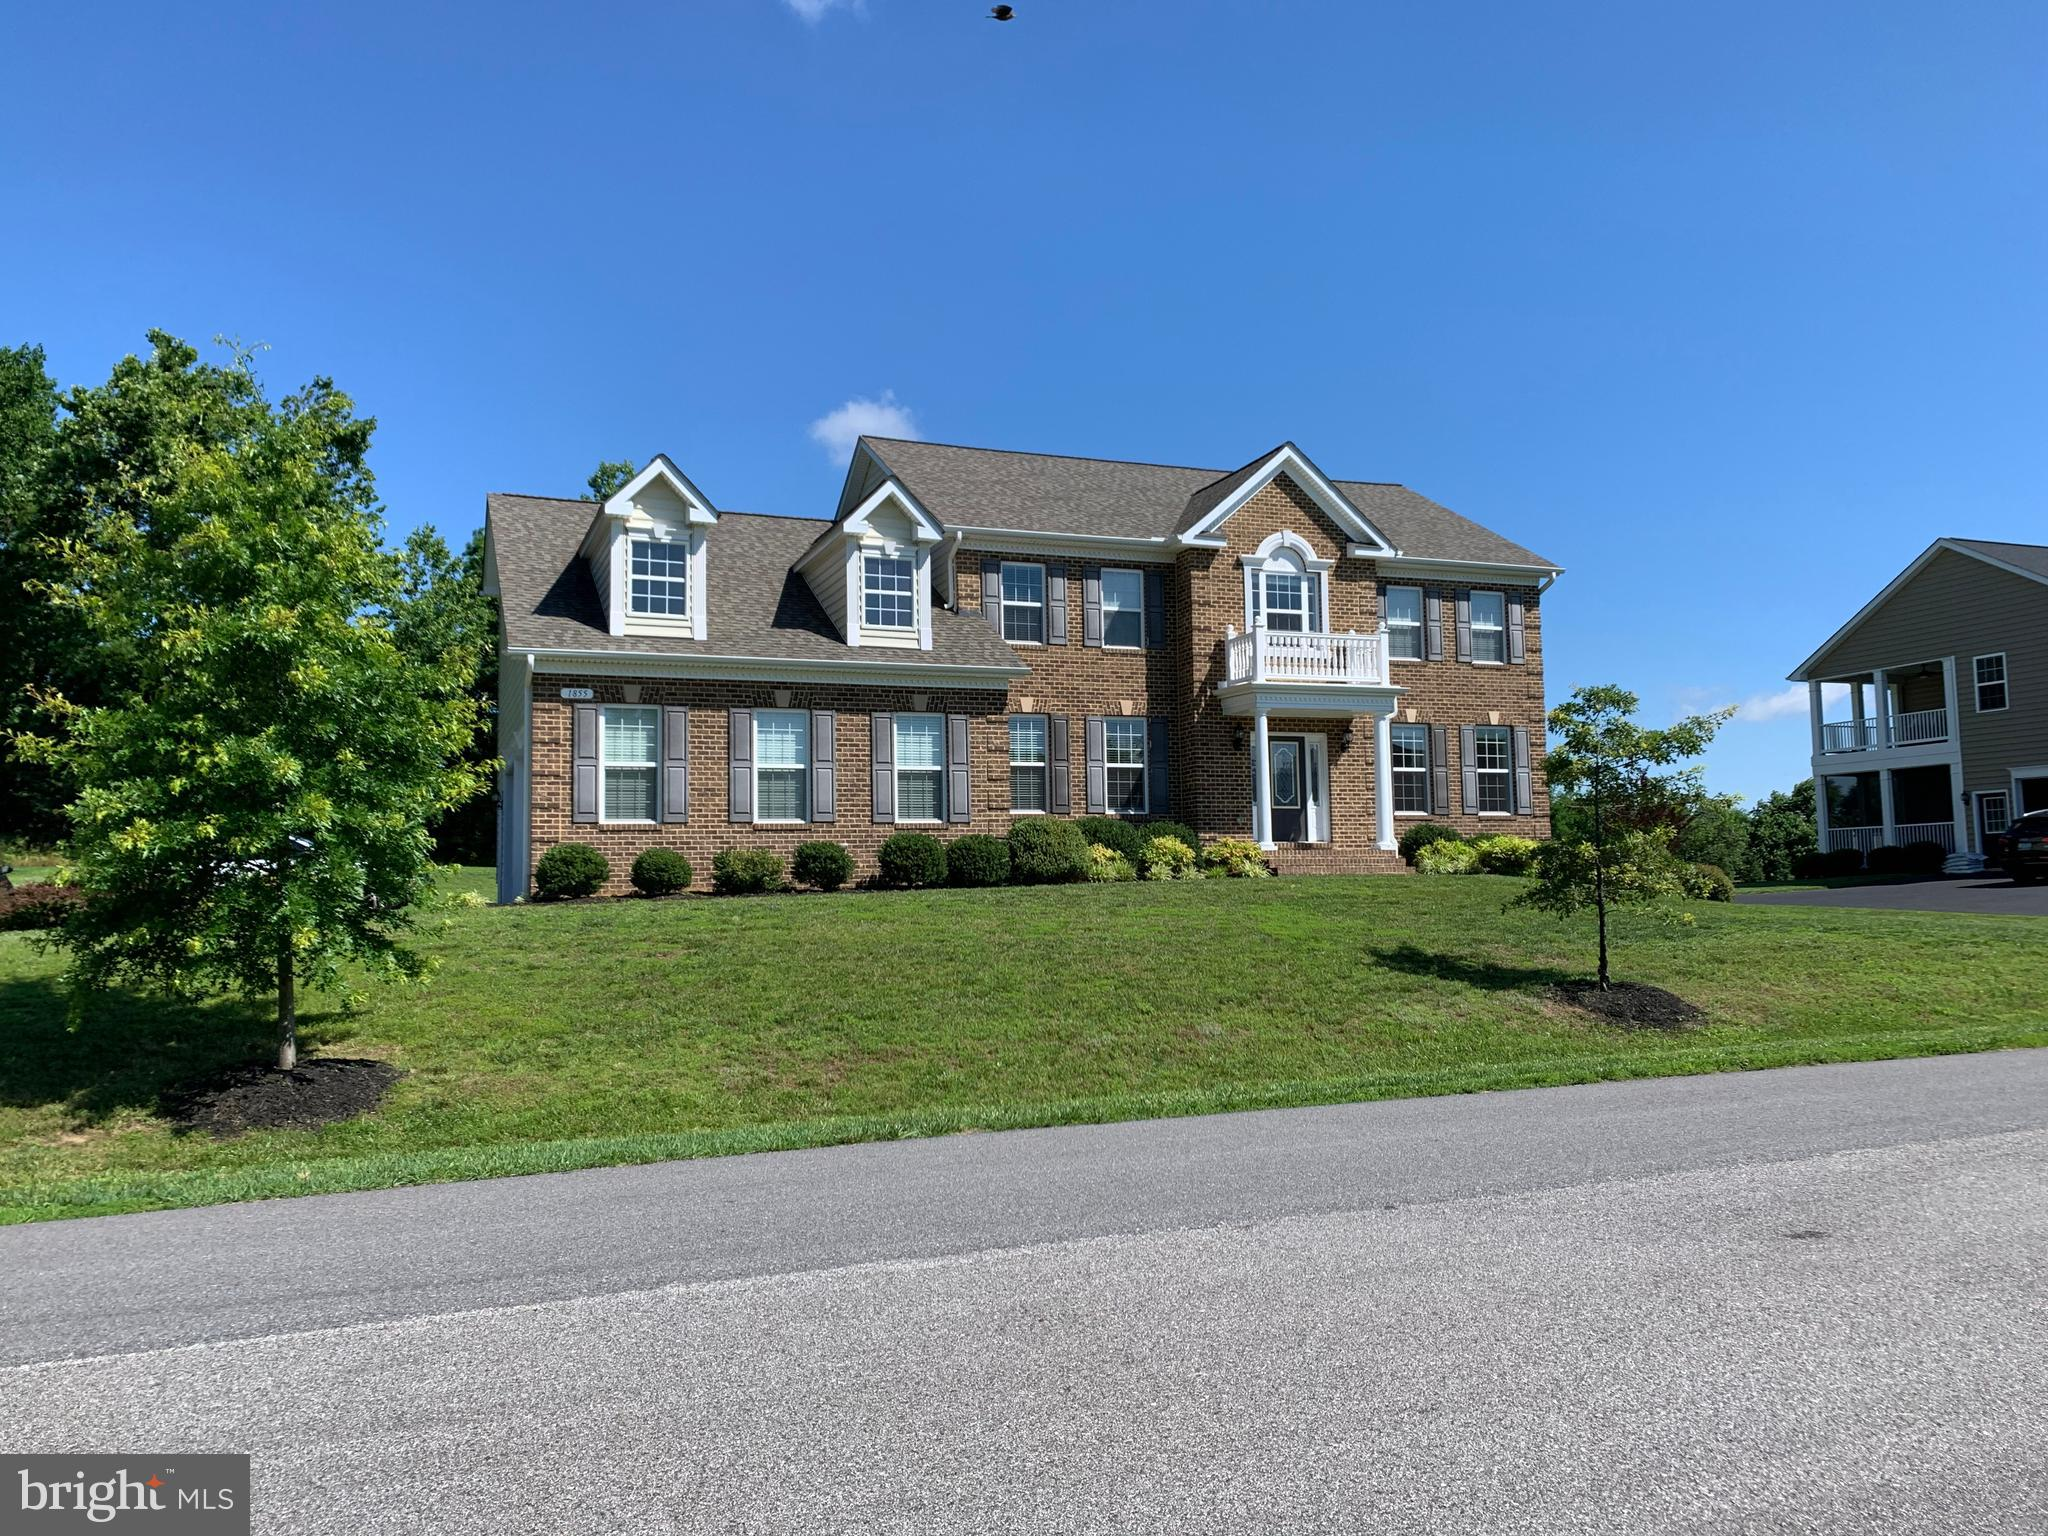 AMAZING location in Northern Calvert right off route 4, convenient commute to DC or Andrews, and in